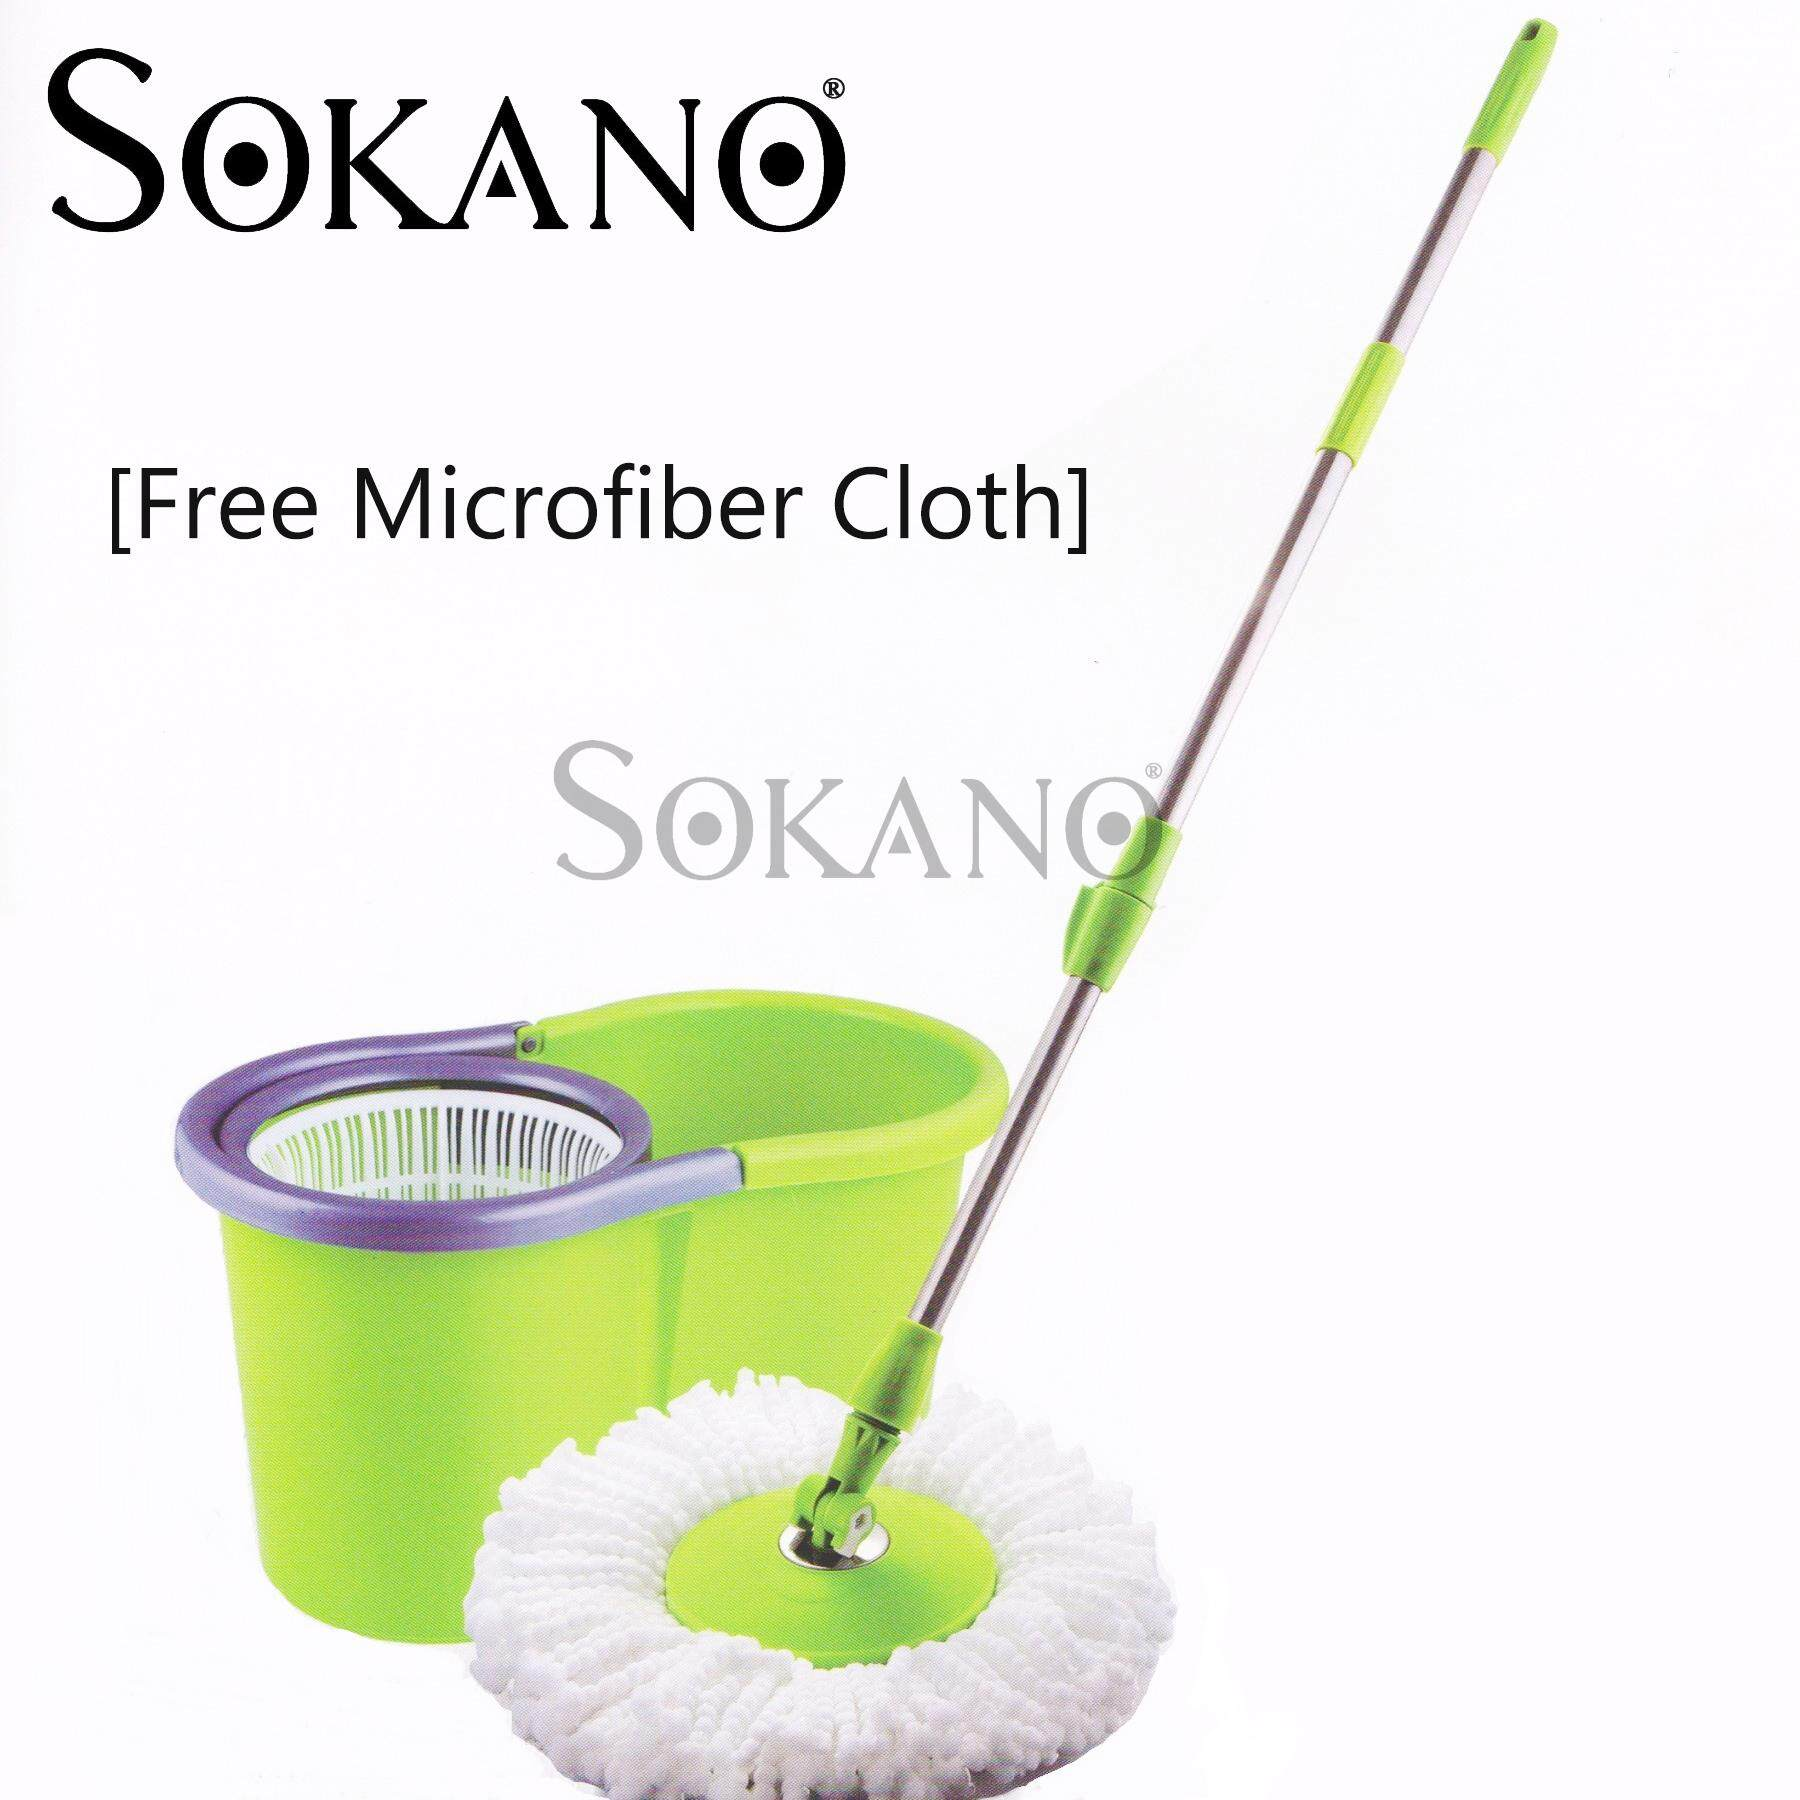 (RAYA 2019) SOKANO Microfiber Spin Mop with Cleaner Bucket SM01 [Free Microfiber Cloth]